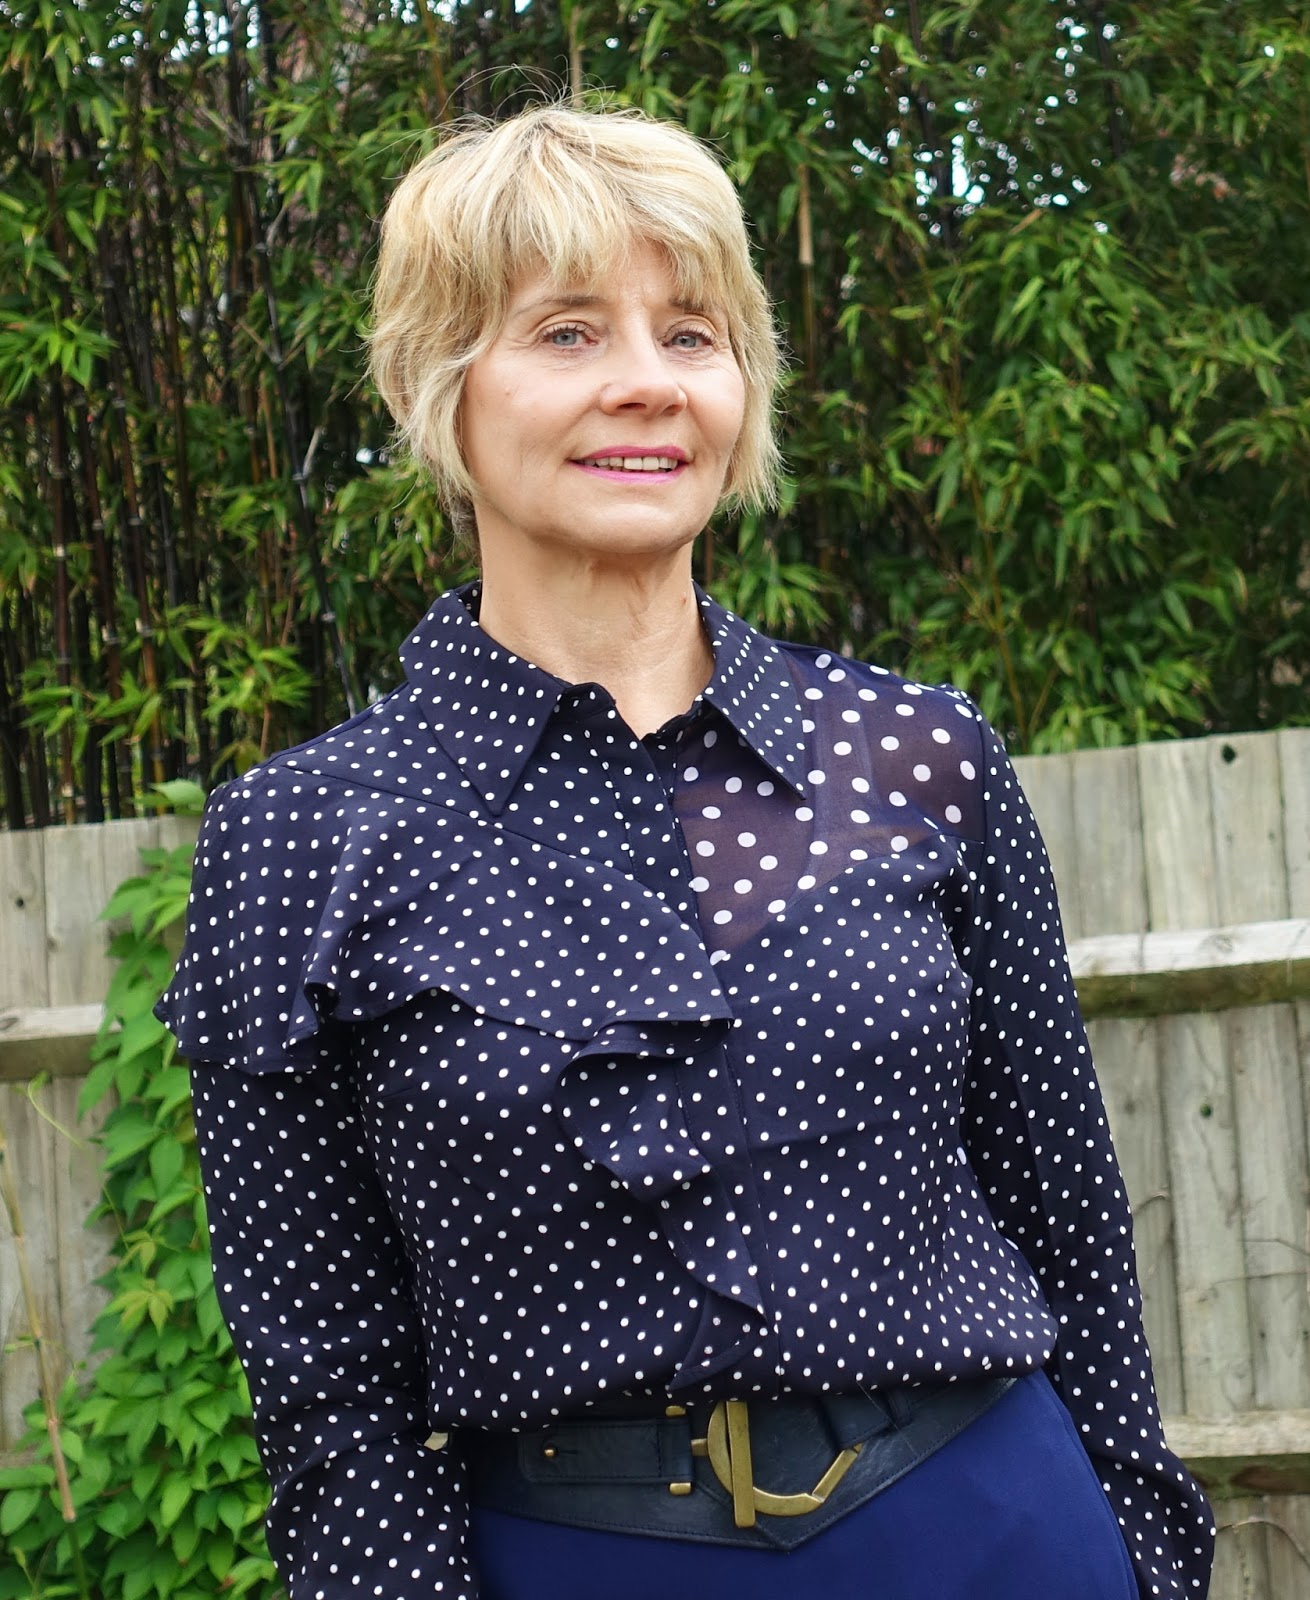 Gail Hanlon at Is This Mutton in Finery London polka dot blouse